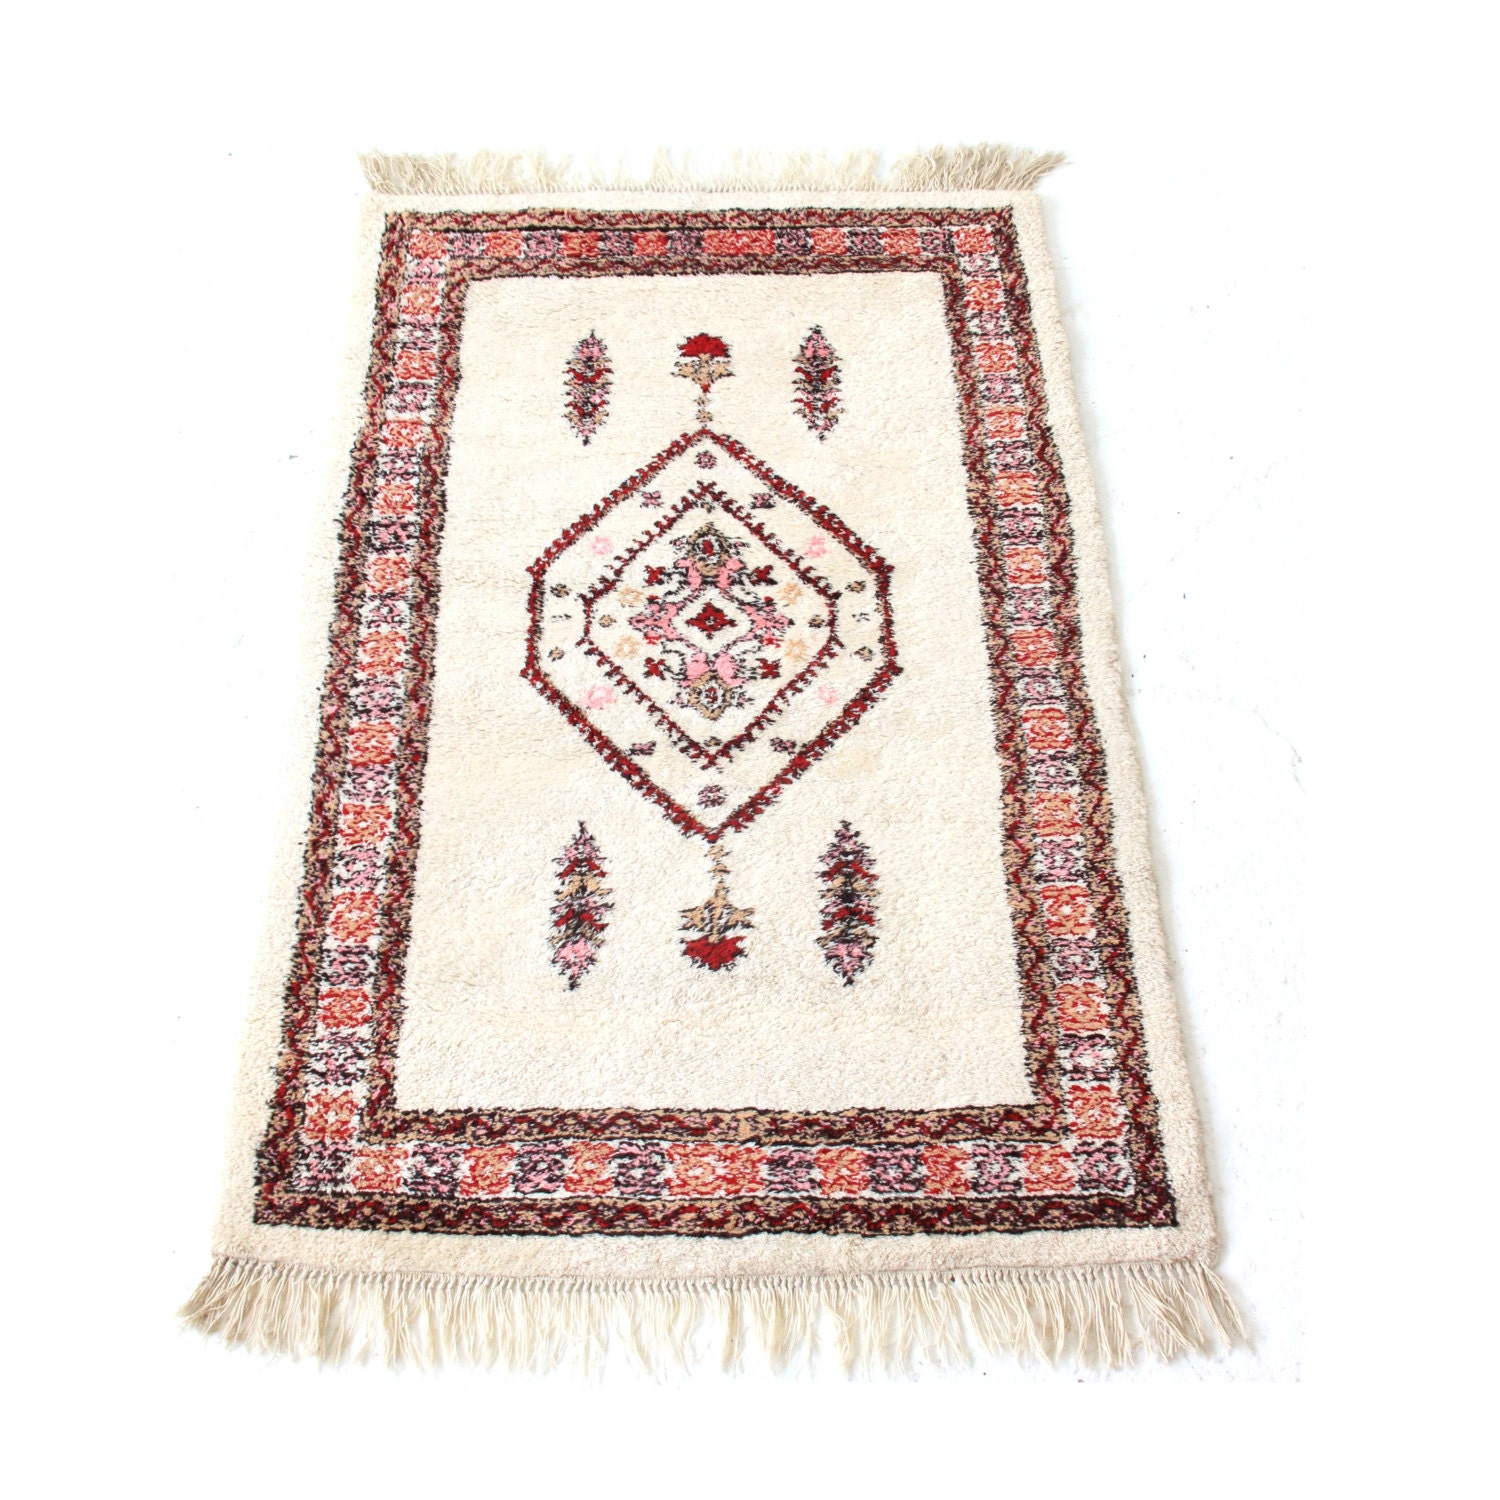 Vintage Pink And White Moroccan Rug